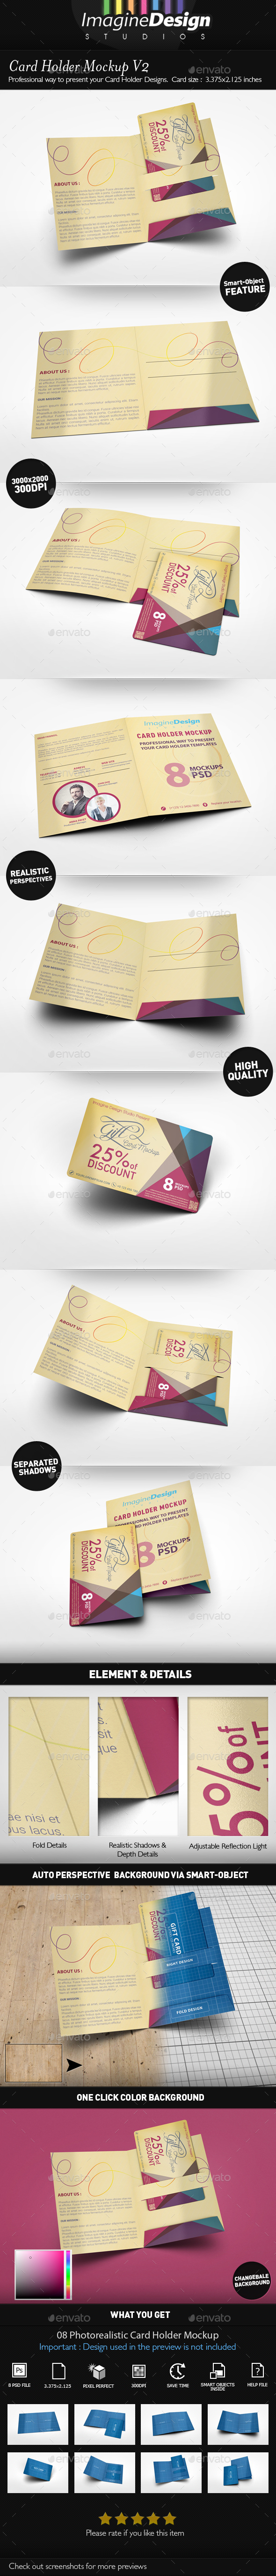 GraphicRiver Card Holder Mockup V2 20963095